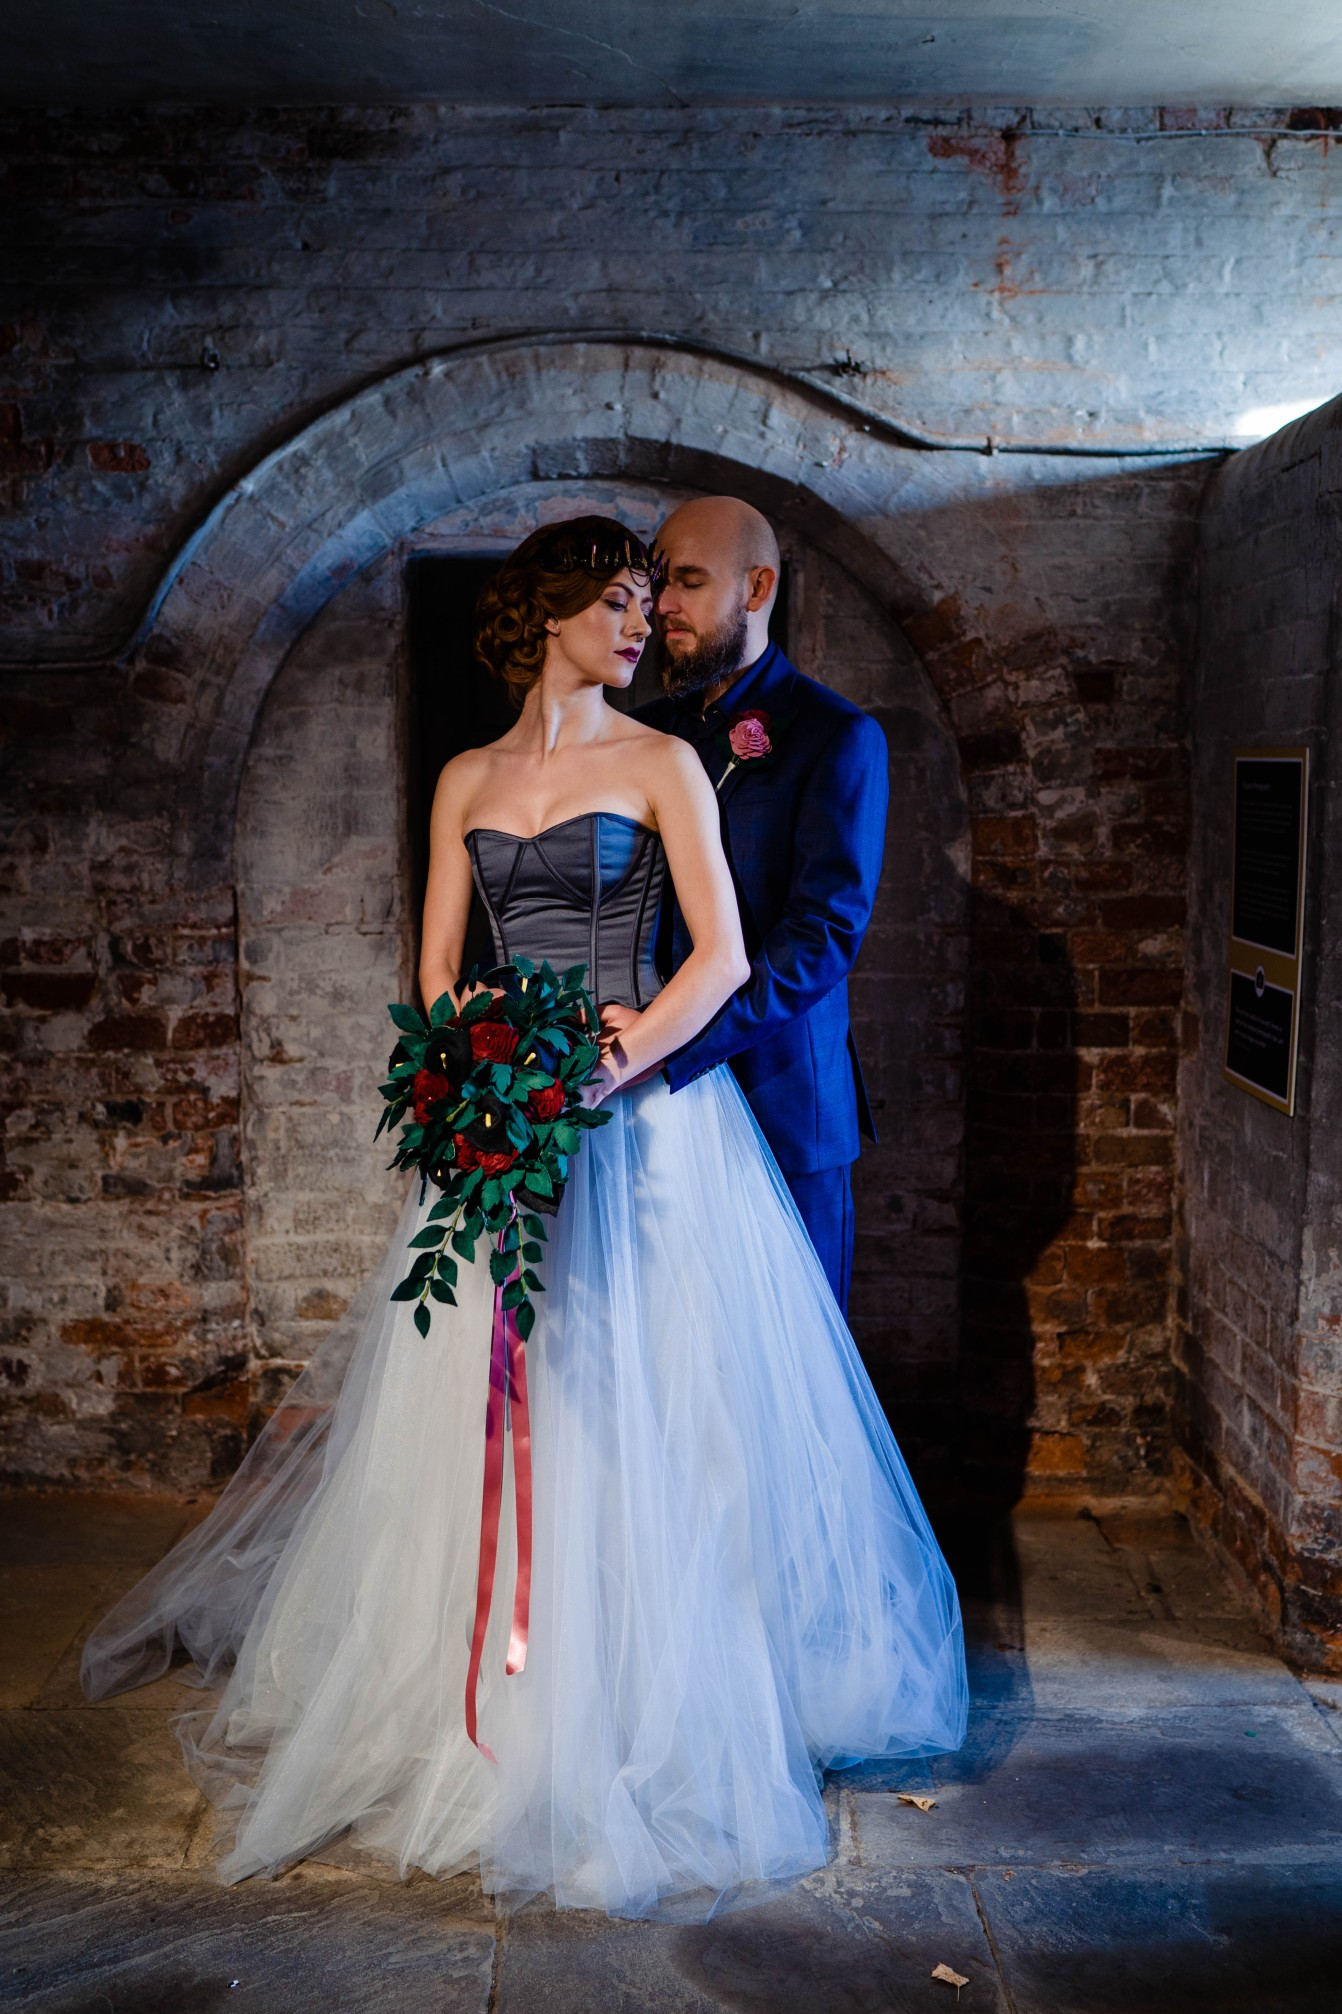 A gothic wedding - national justice museum wedding - alternative wedding - Vicki Clayson Photography (1)